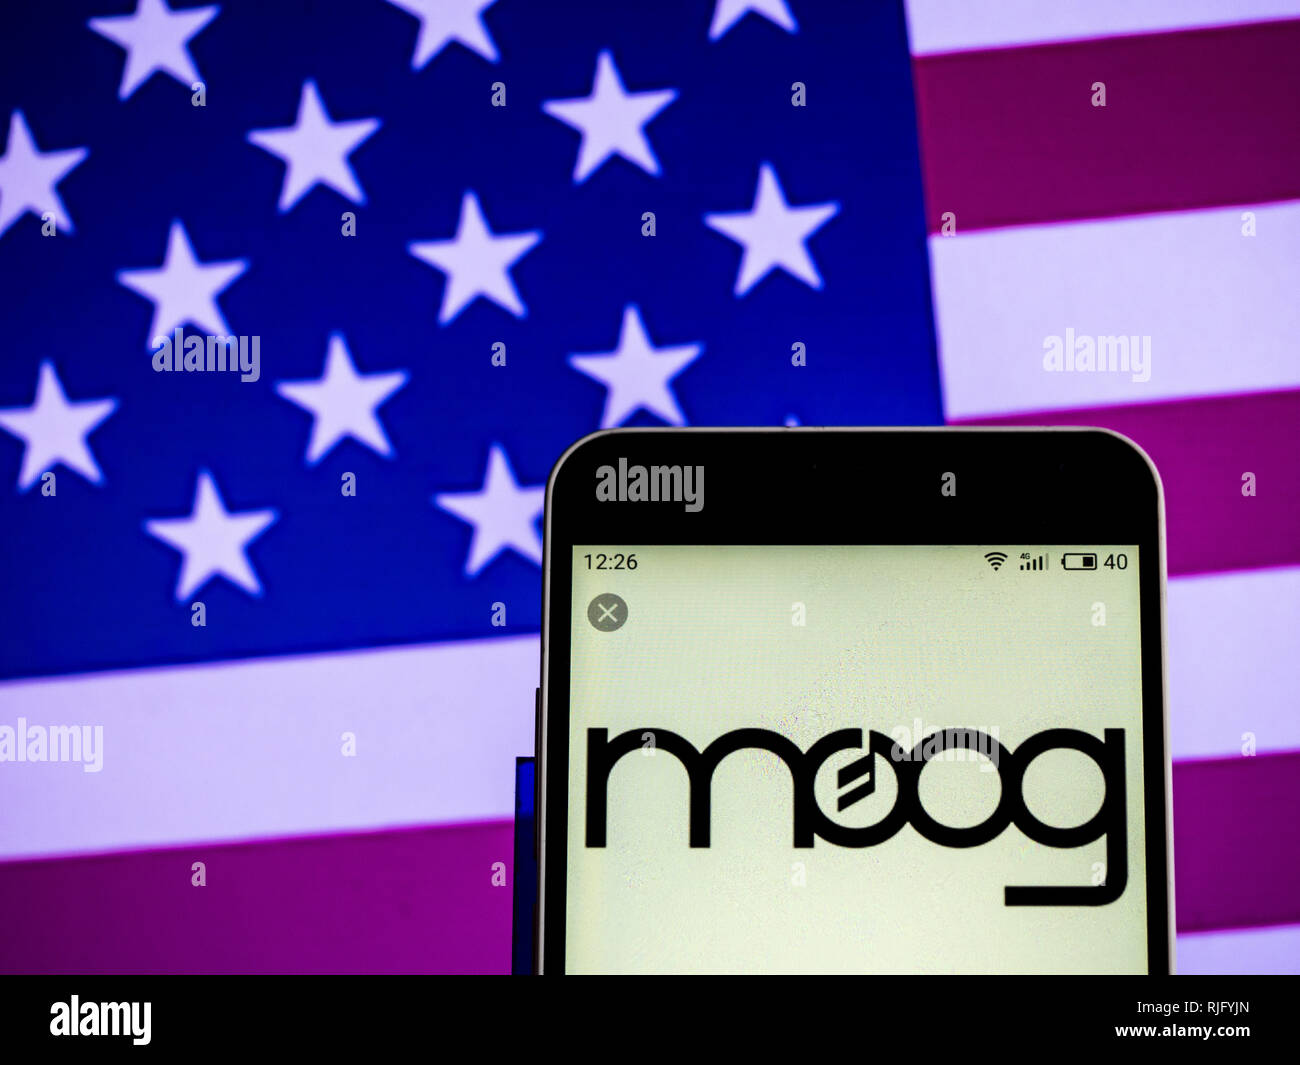 Ukraine. 6th Feb, 2019. Moog Music Musical instrument manufacturing company logo seen displayed on a smart phone. Credit: Igor Golovniov/SOPA Images/ZUMA Wire/Alamy Live News - Stock Image